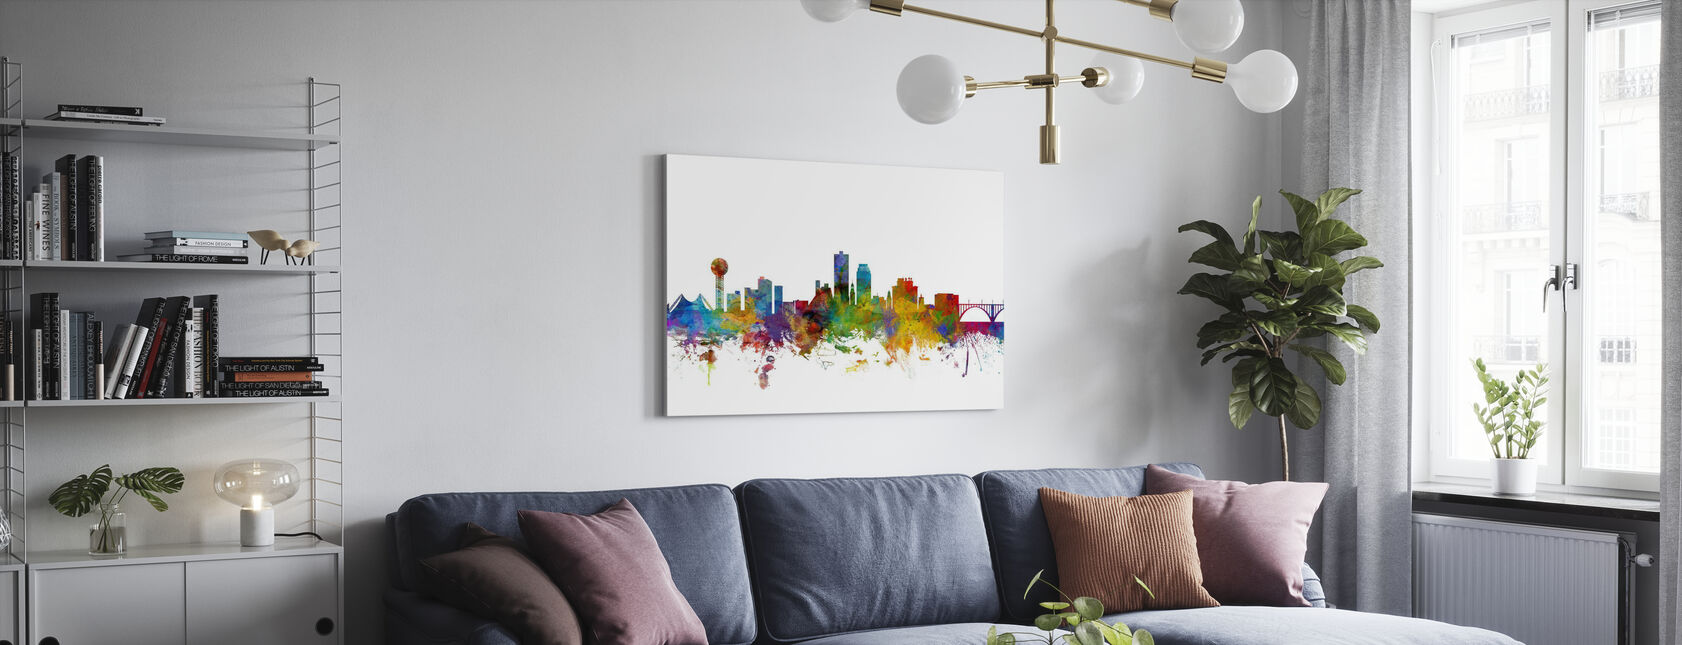 Knoxville Tennessee - Canvas print - Woonkamer